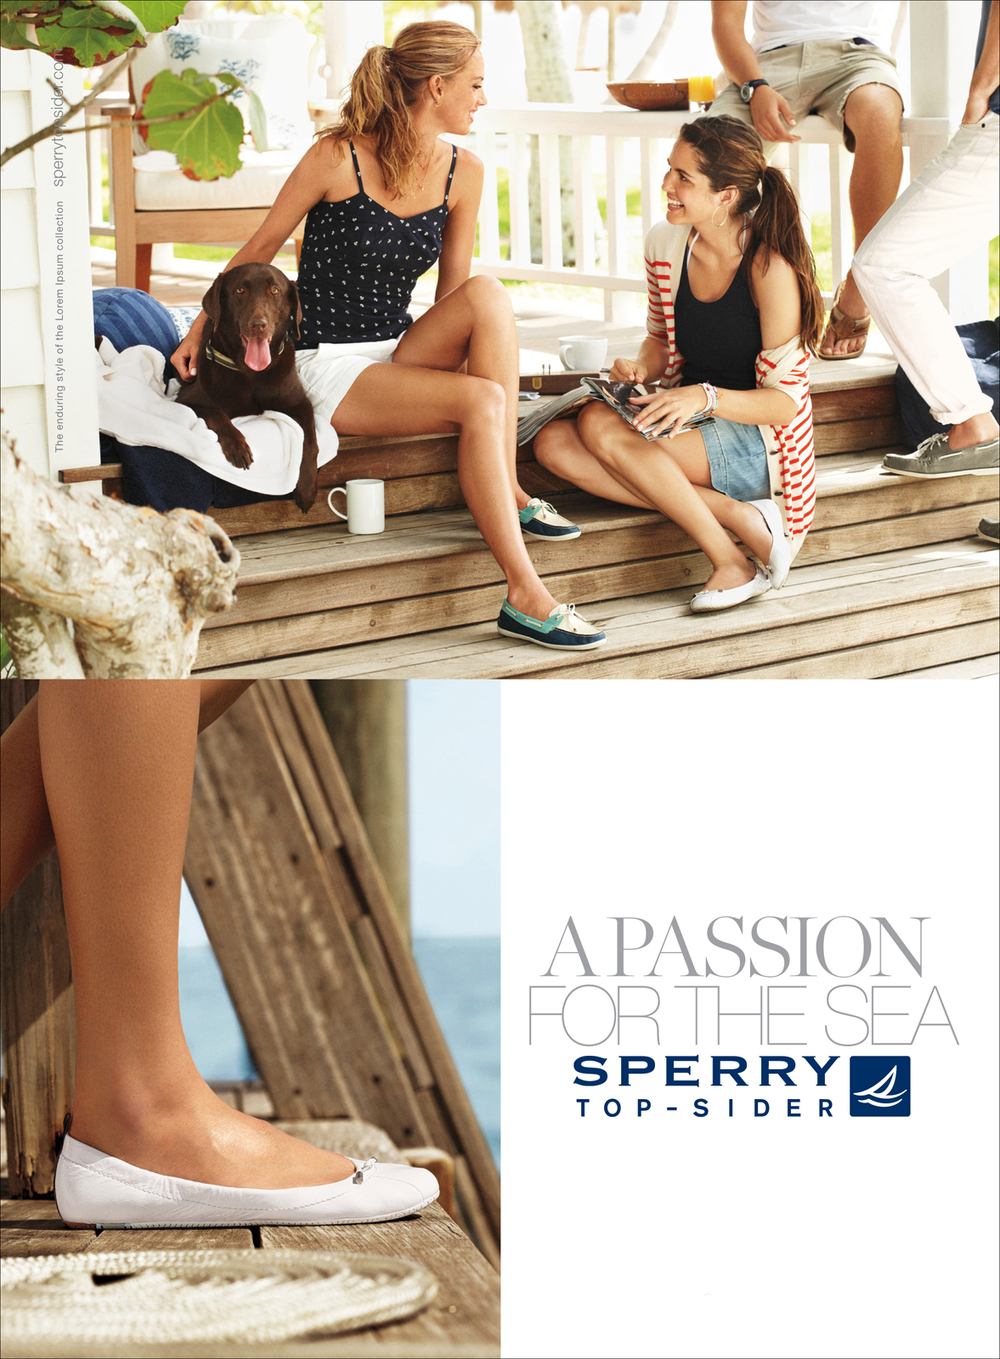 SC_ADVERTISING_SPERRY_KEYS_SS_2010_14.jpg